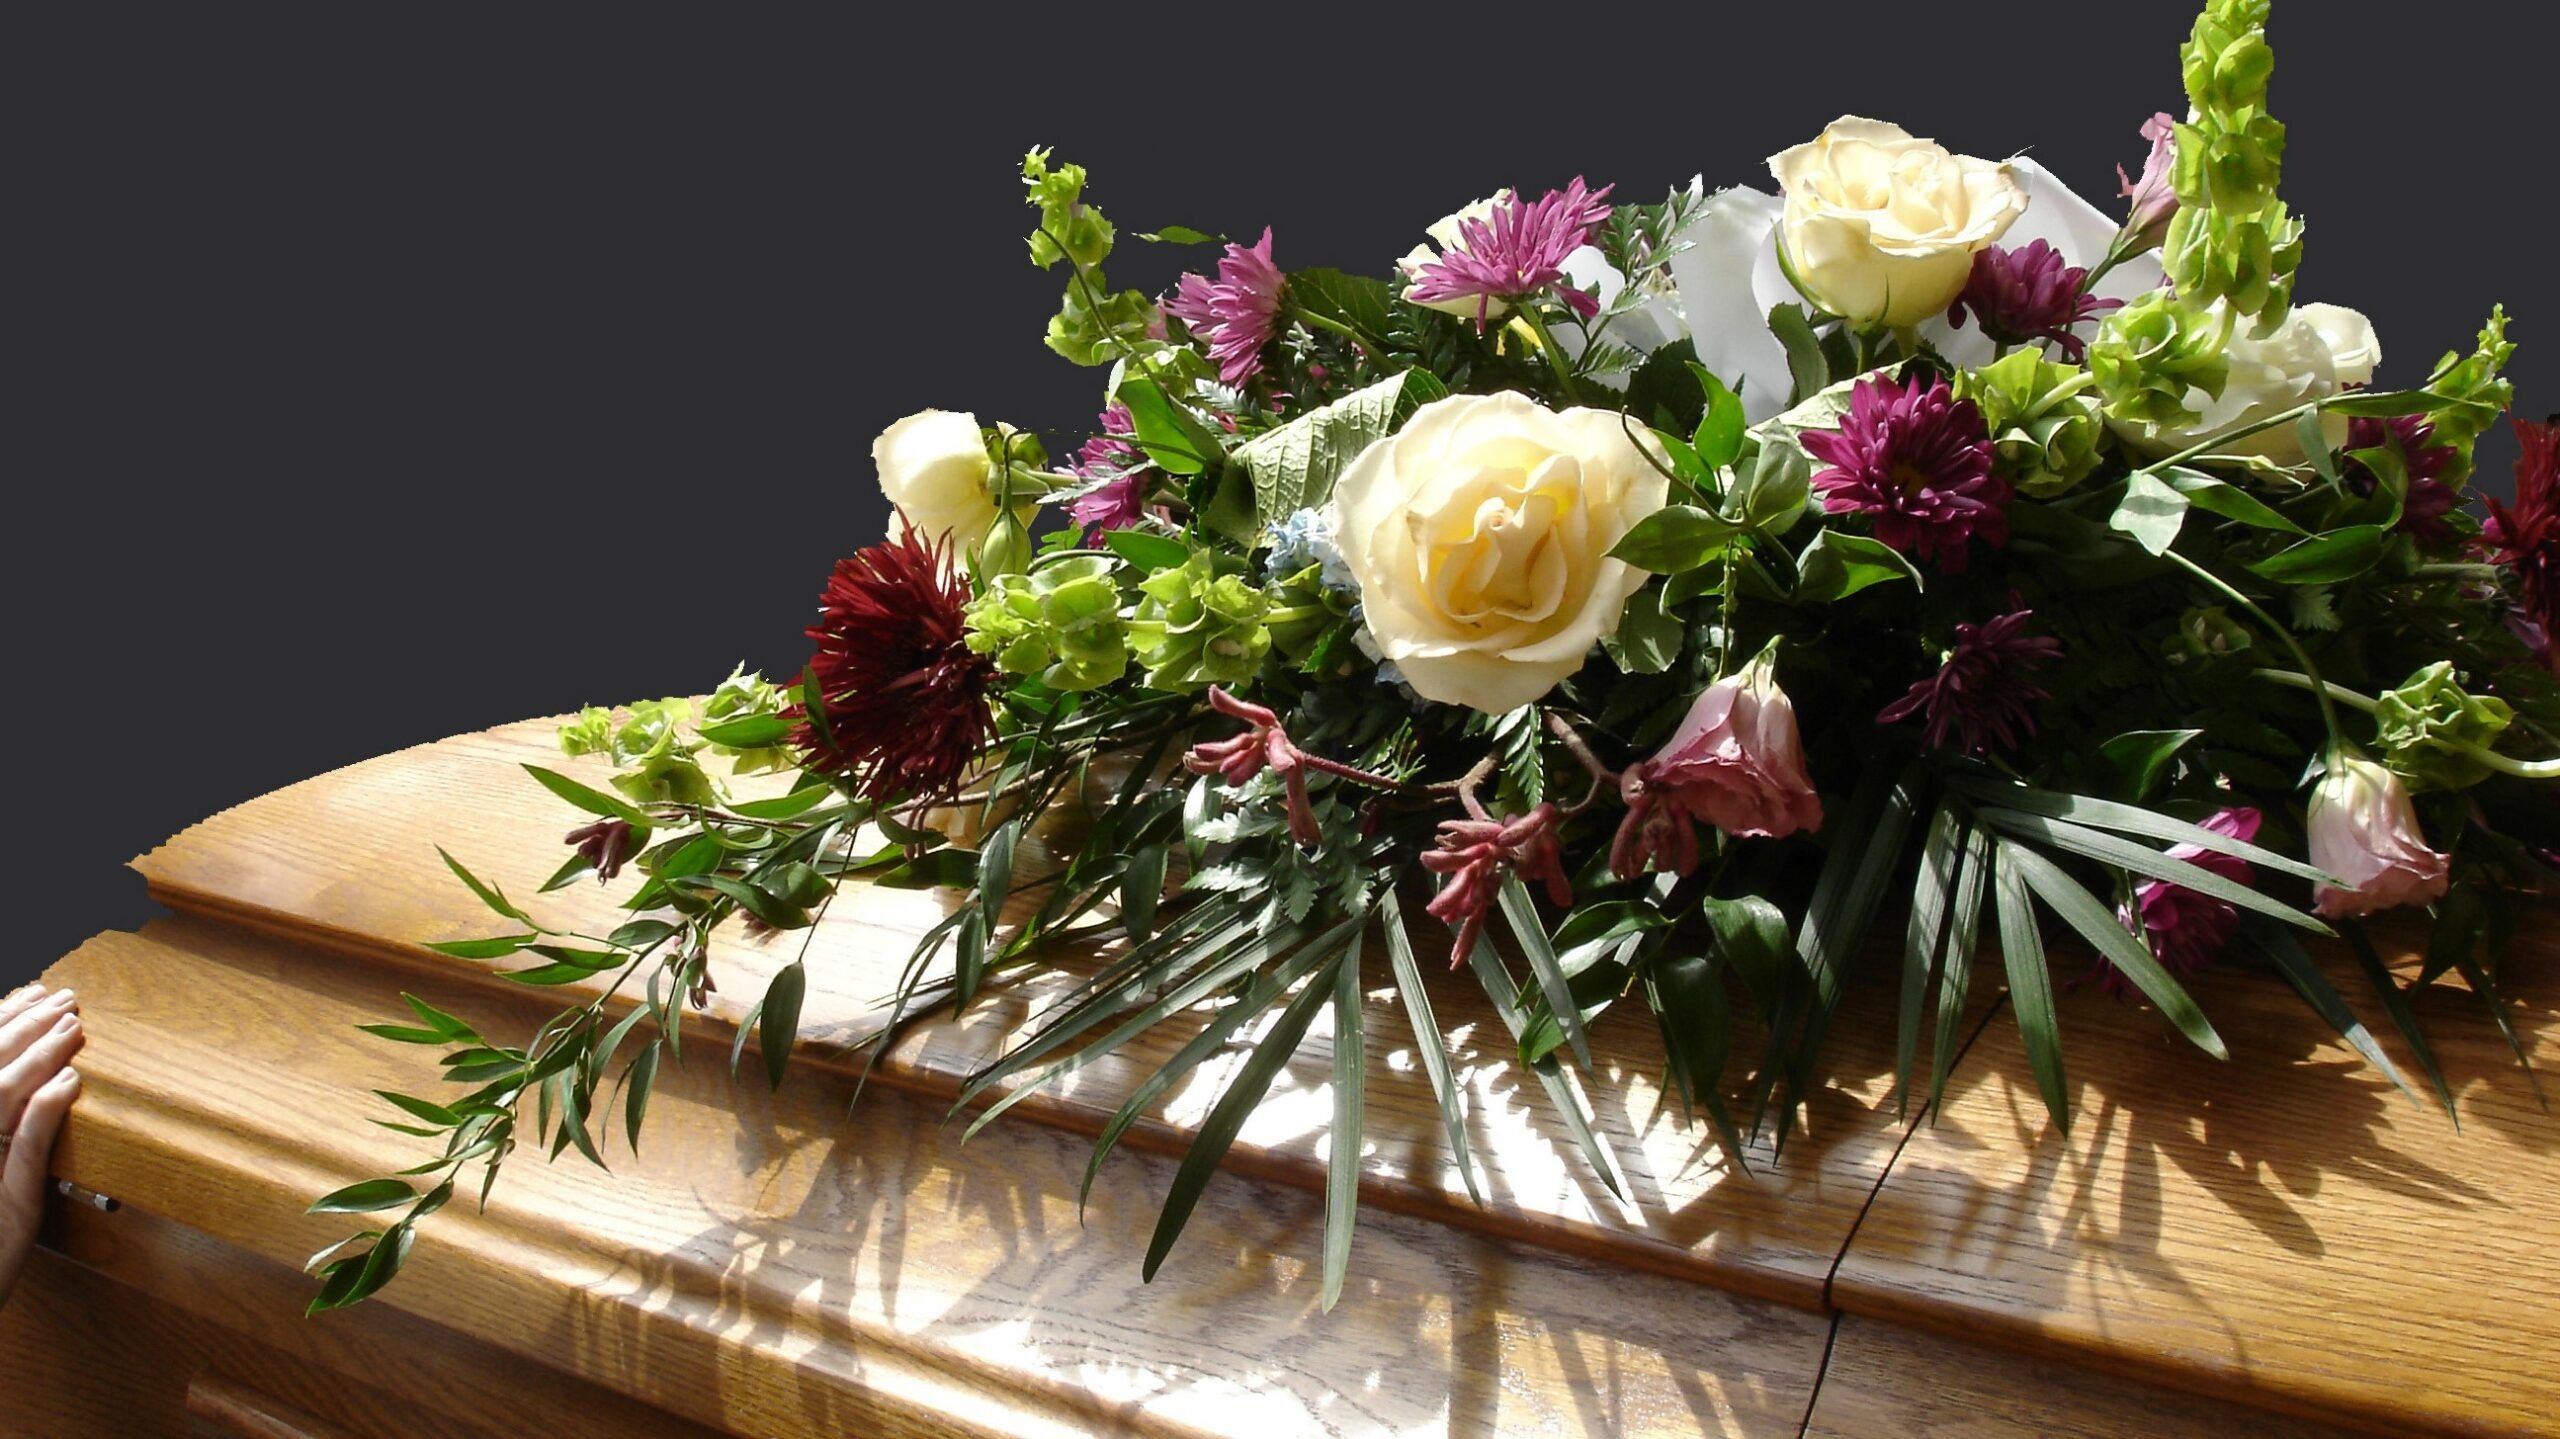 Is an employee entitled to bereavement leave?